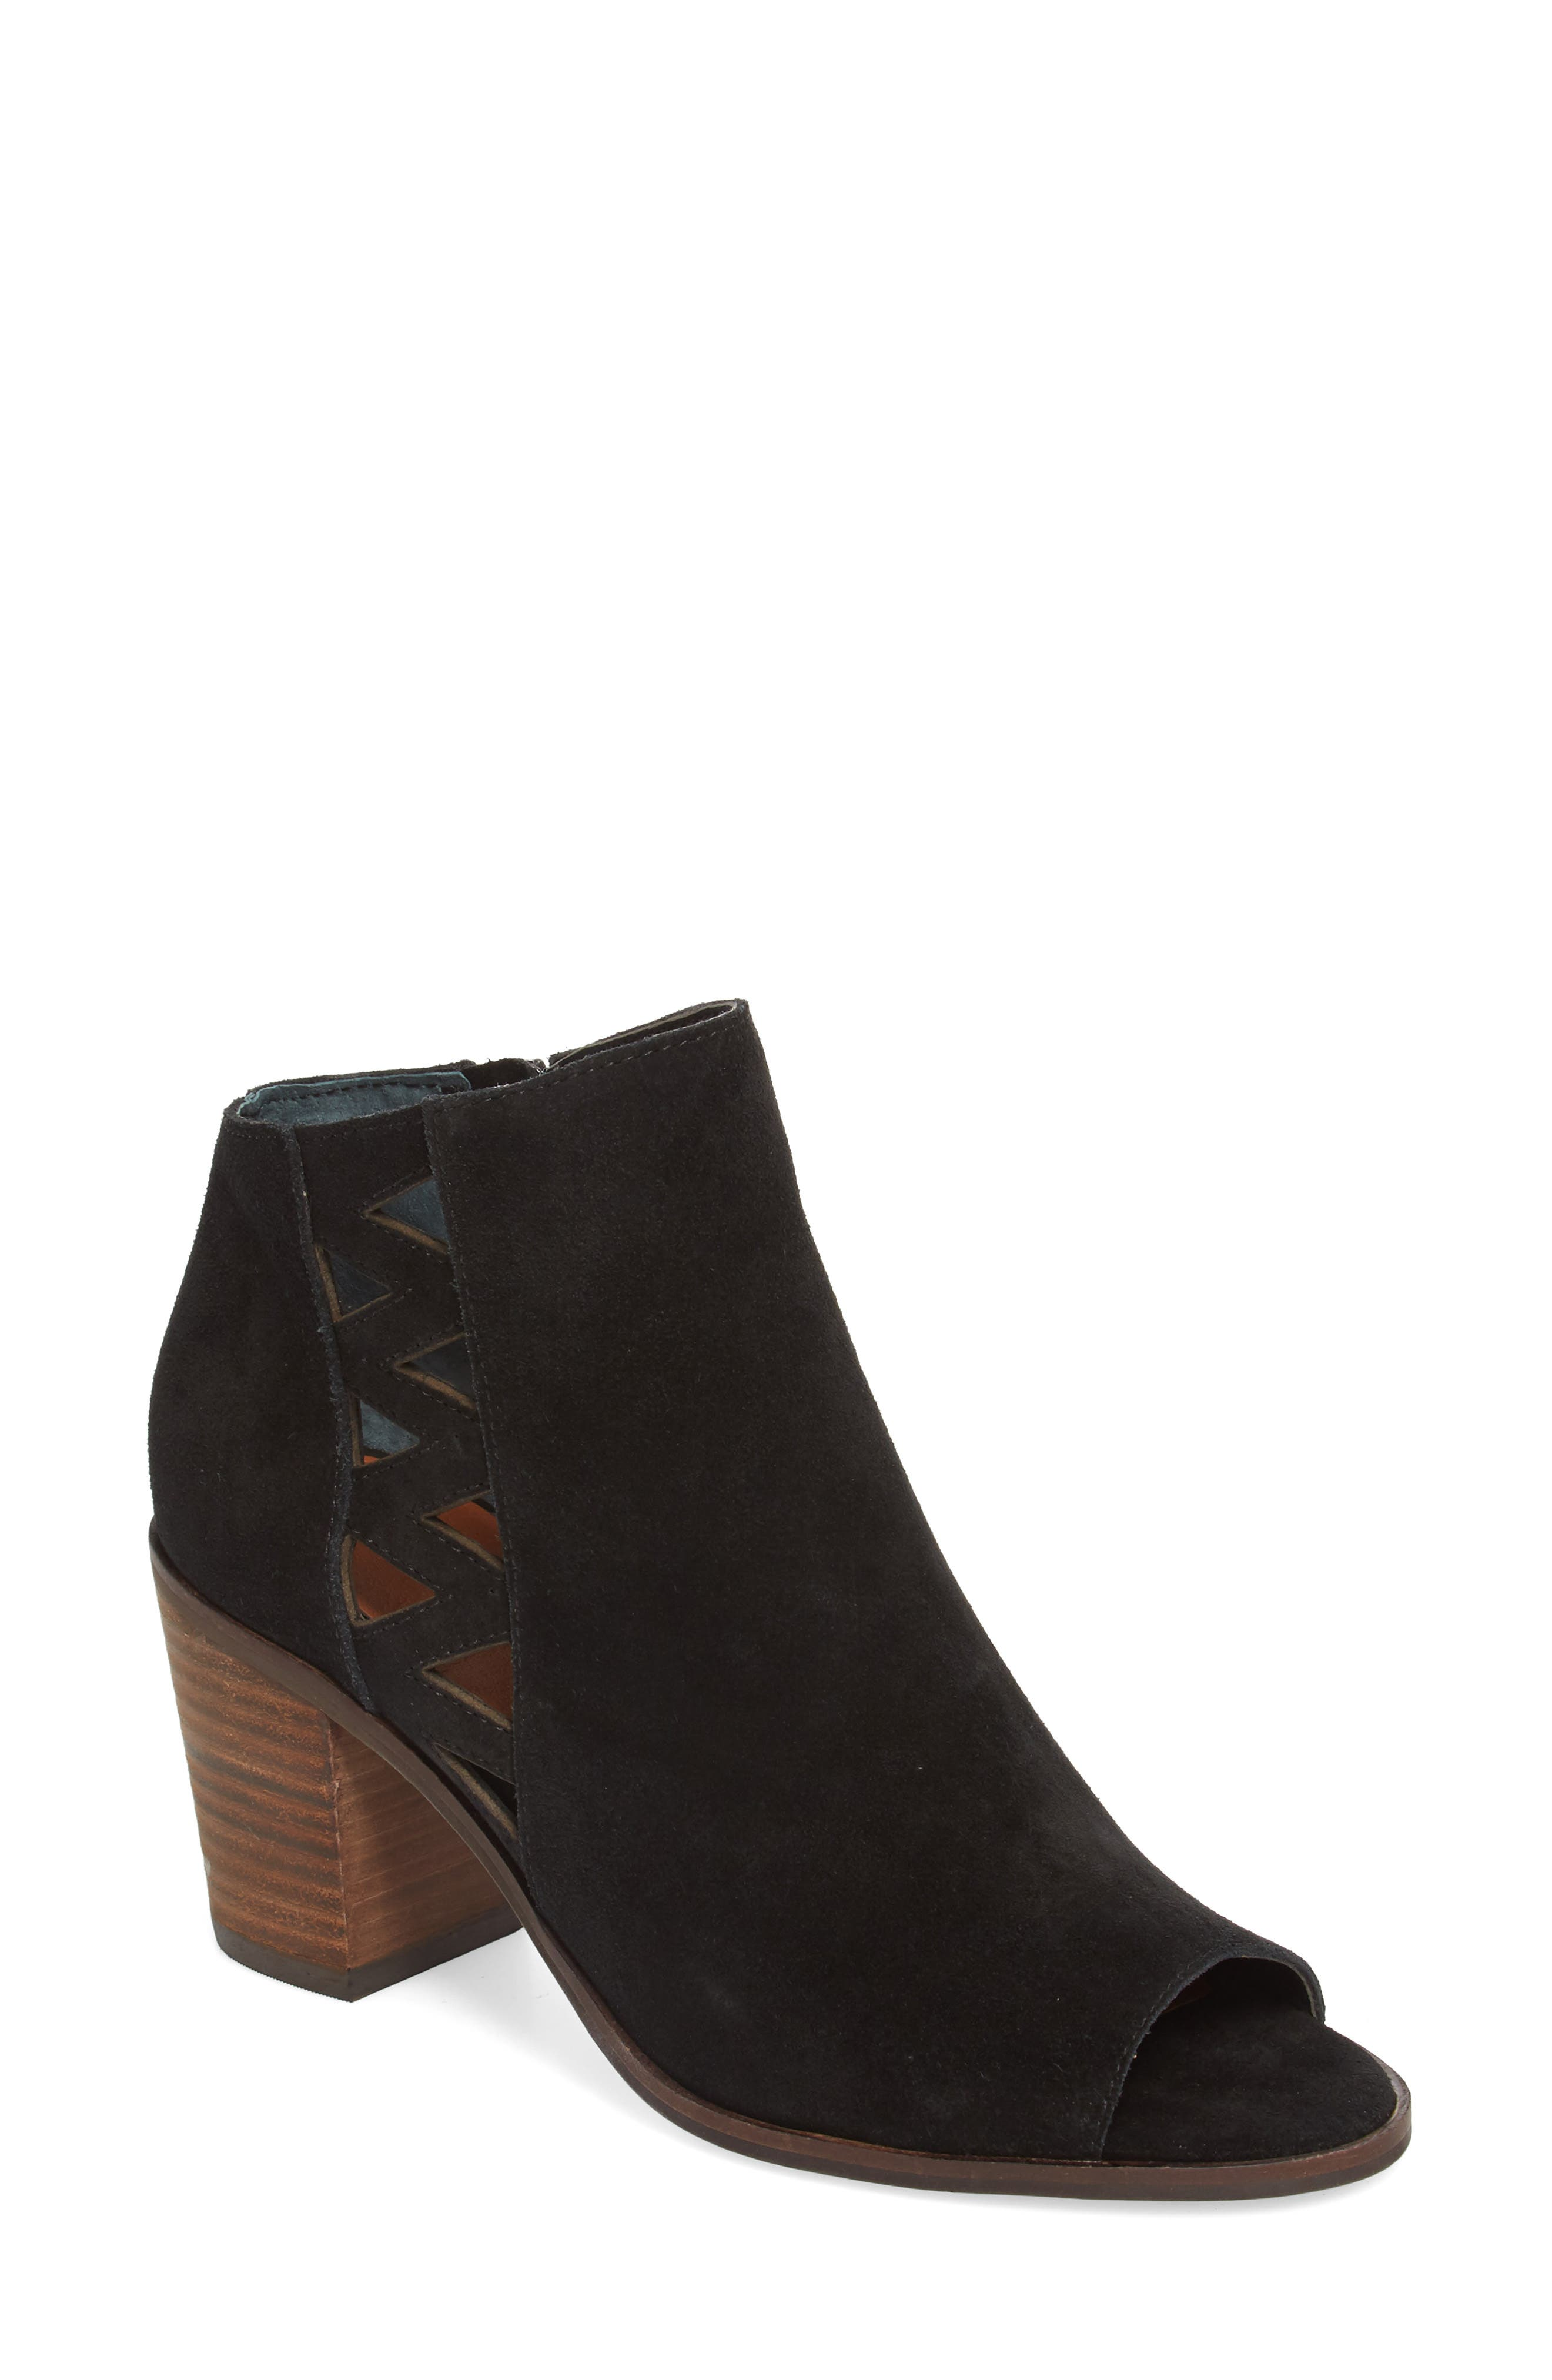 Kantoah Bootie,                         Main,                         color, 001